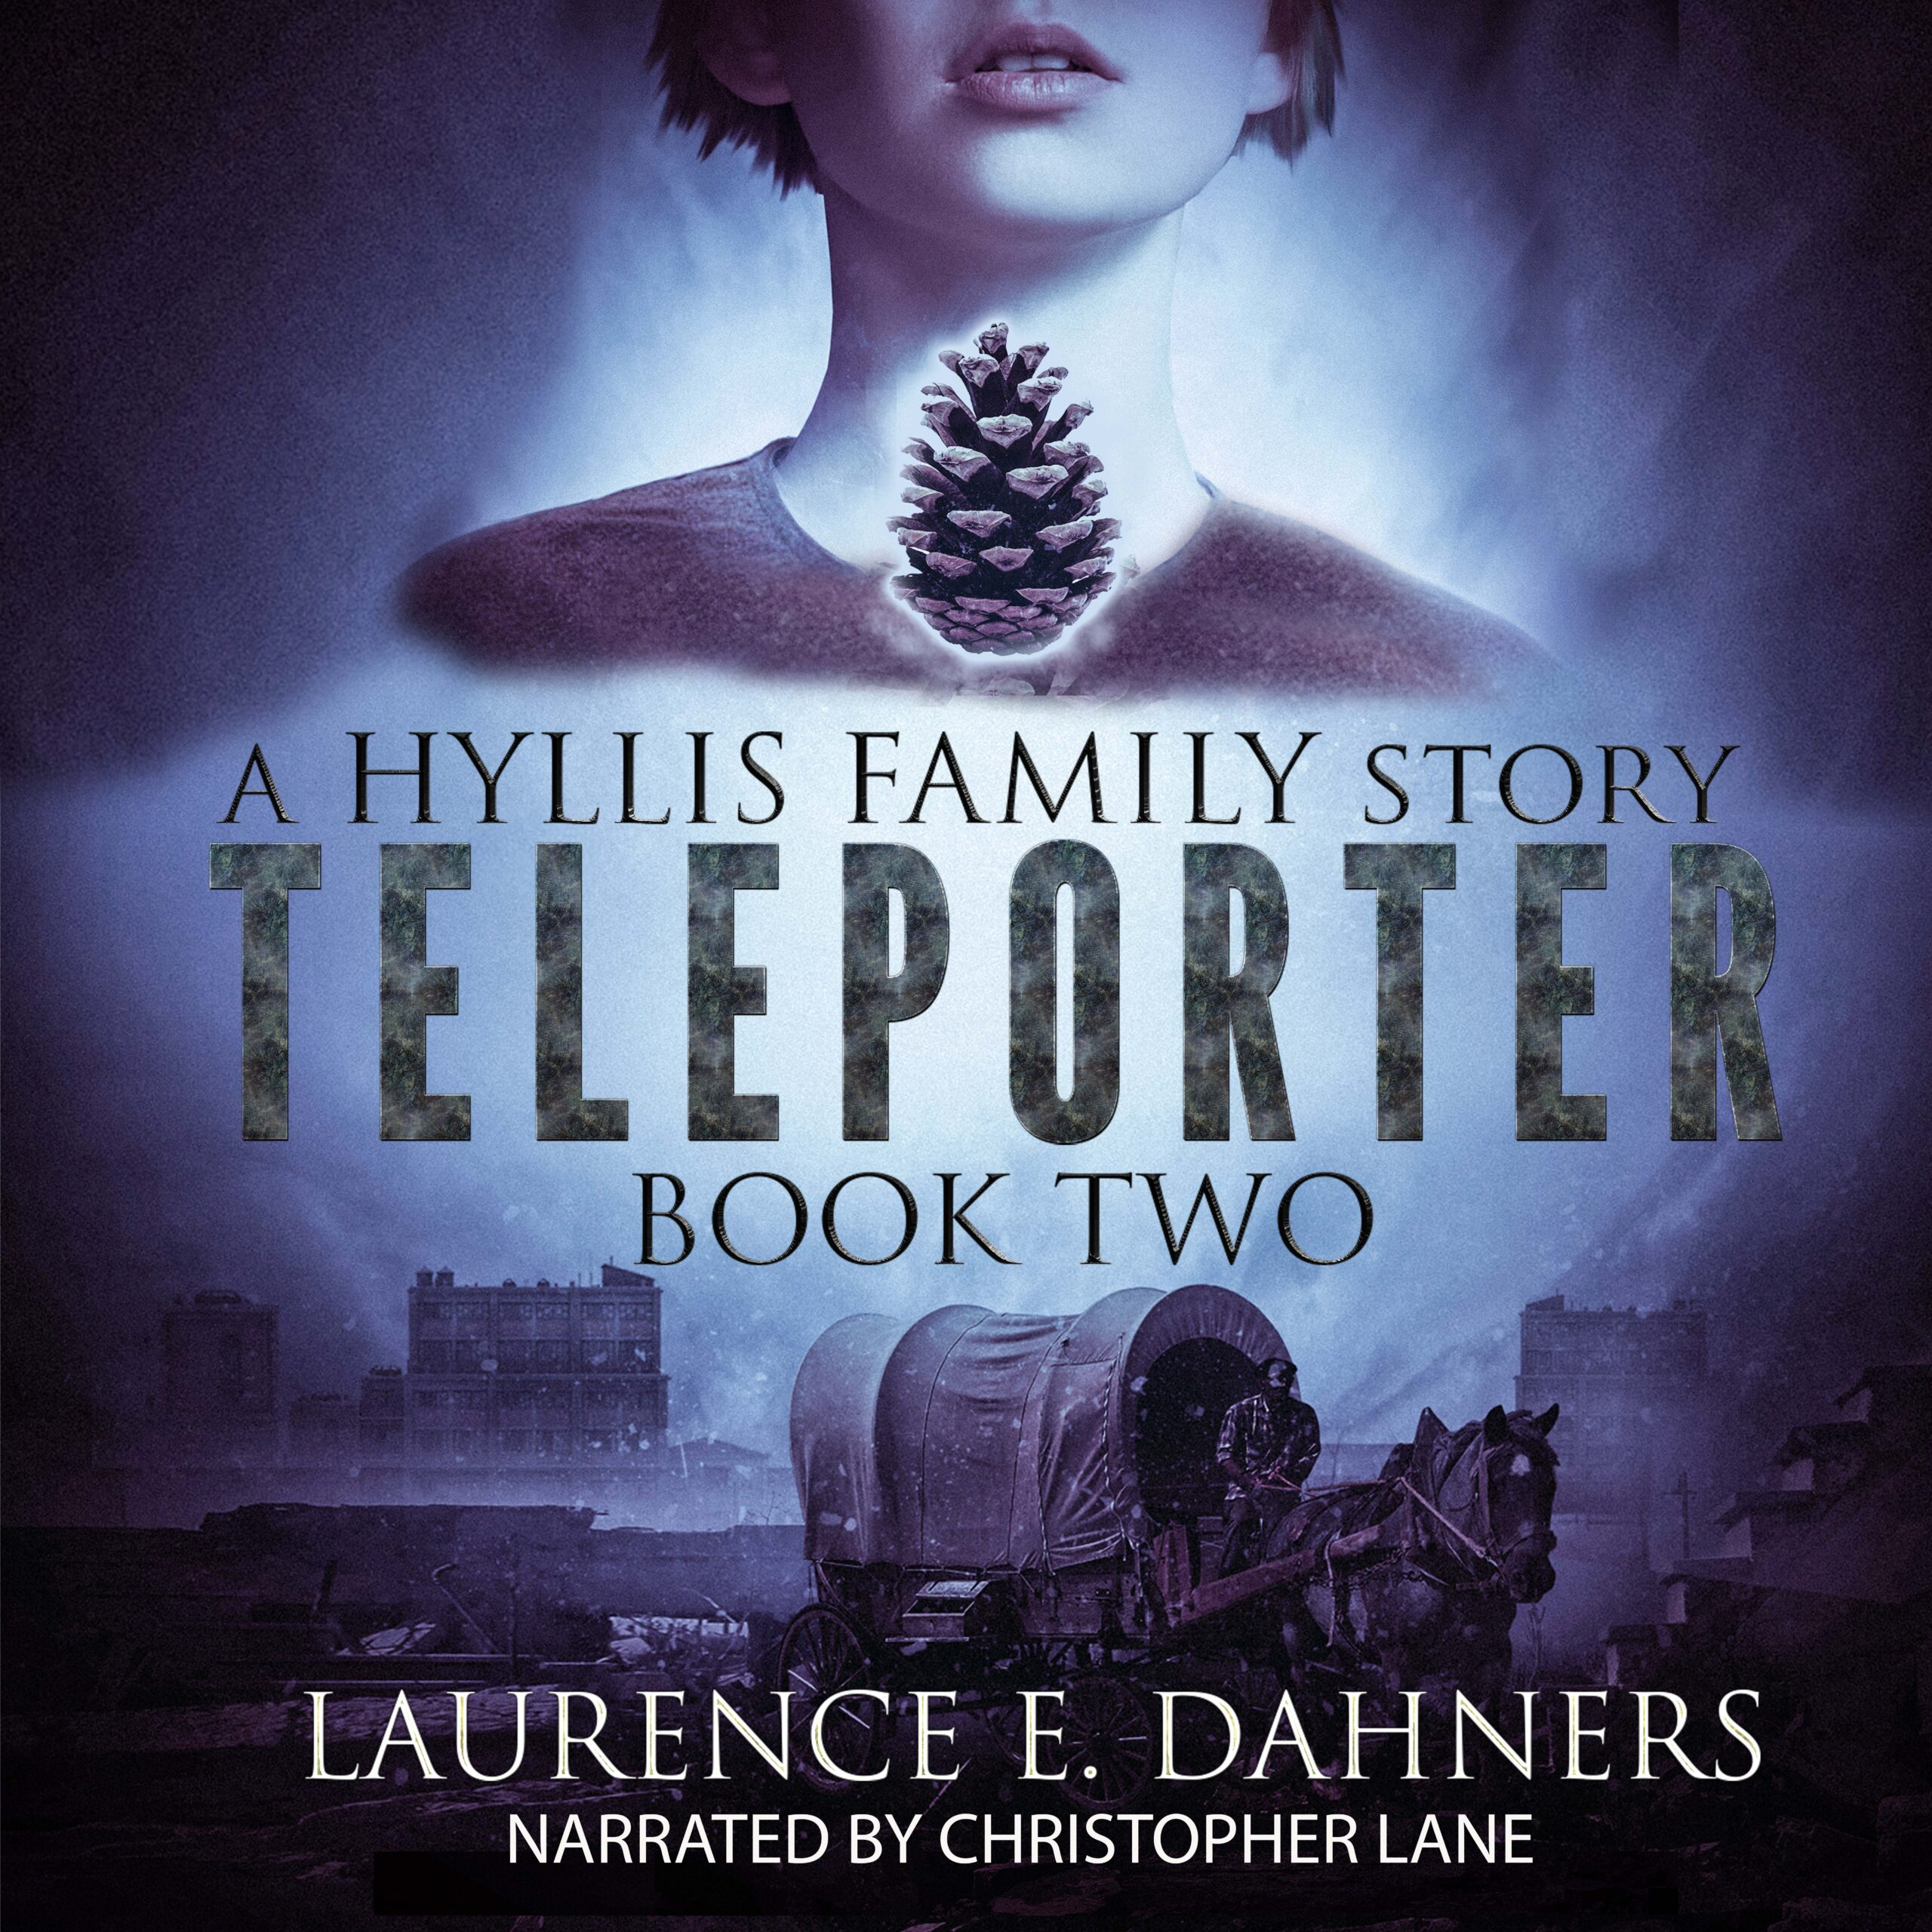 Hyllis Family Teleporter Laurence E. Dahners